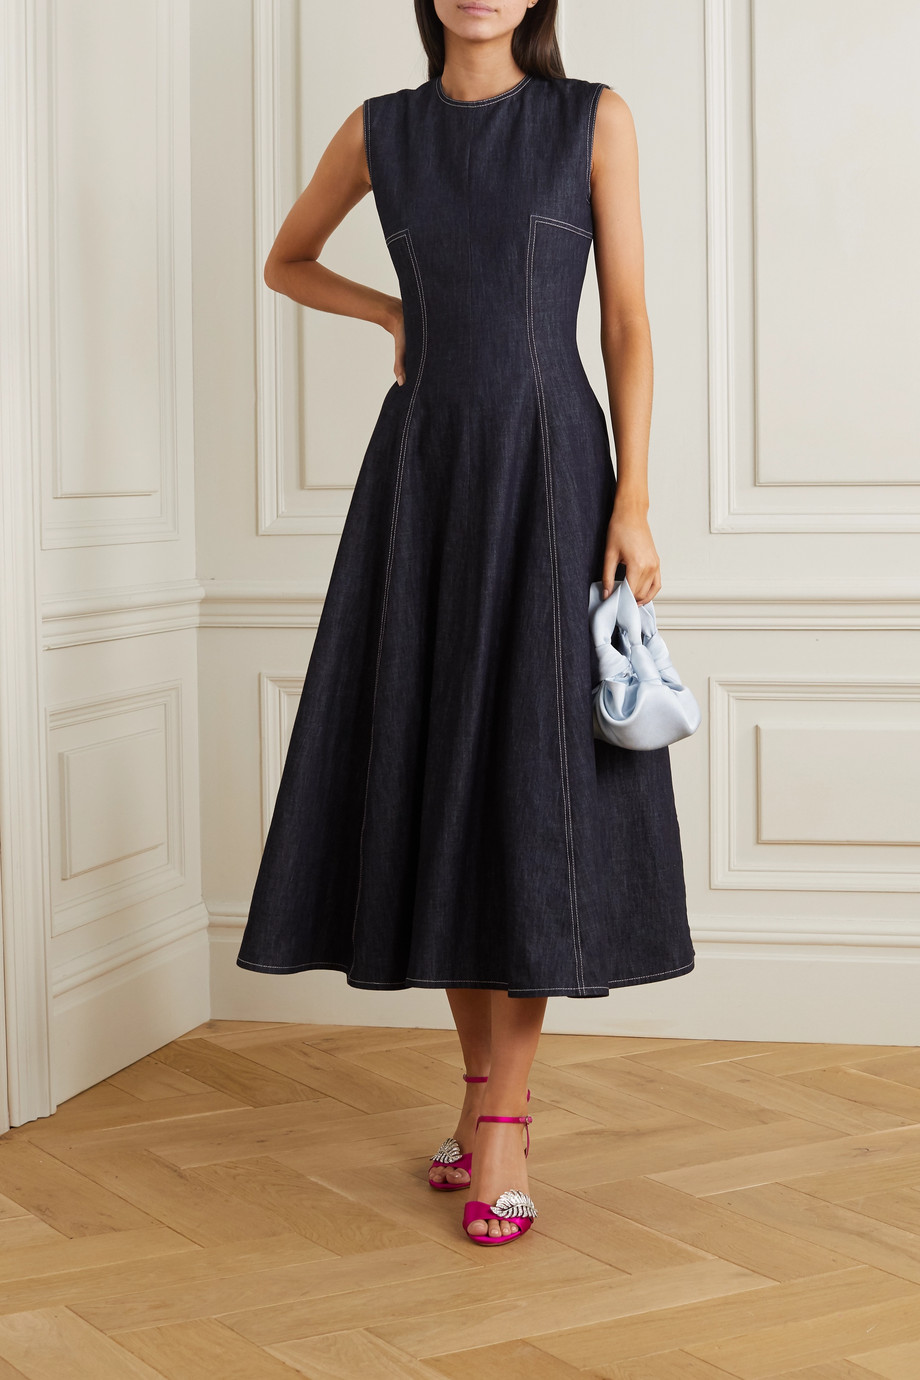 Emilia Wickstead Mara pleated denim midi dress